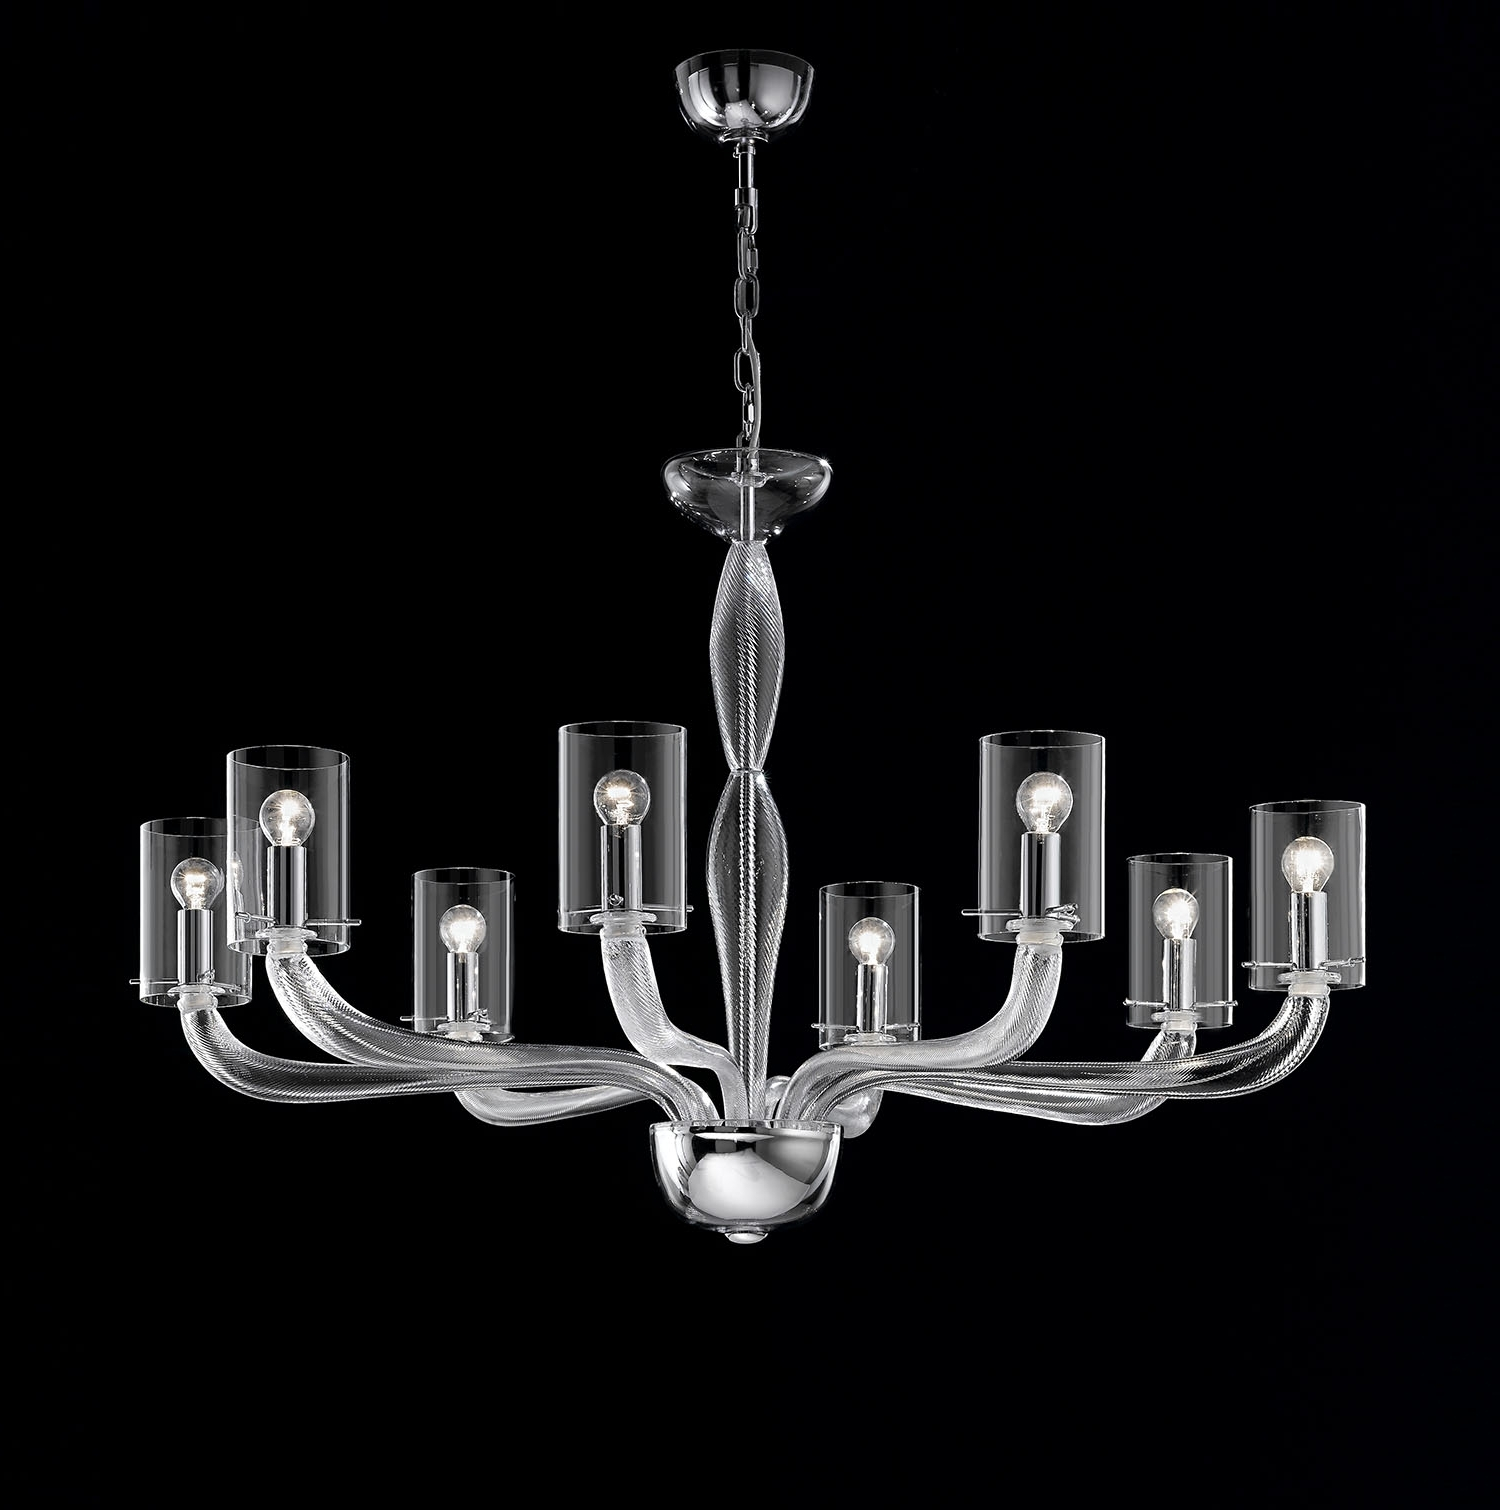 Best And Newest Modern Glass Chandeliers With Light : Modern Glass Chandelier Lighting Beautiful Italian (View 3 of 15)